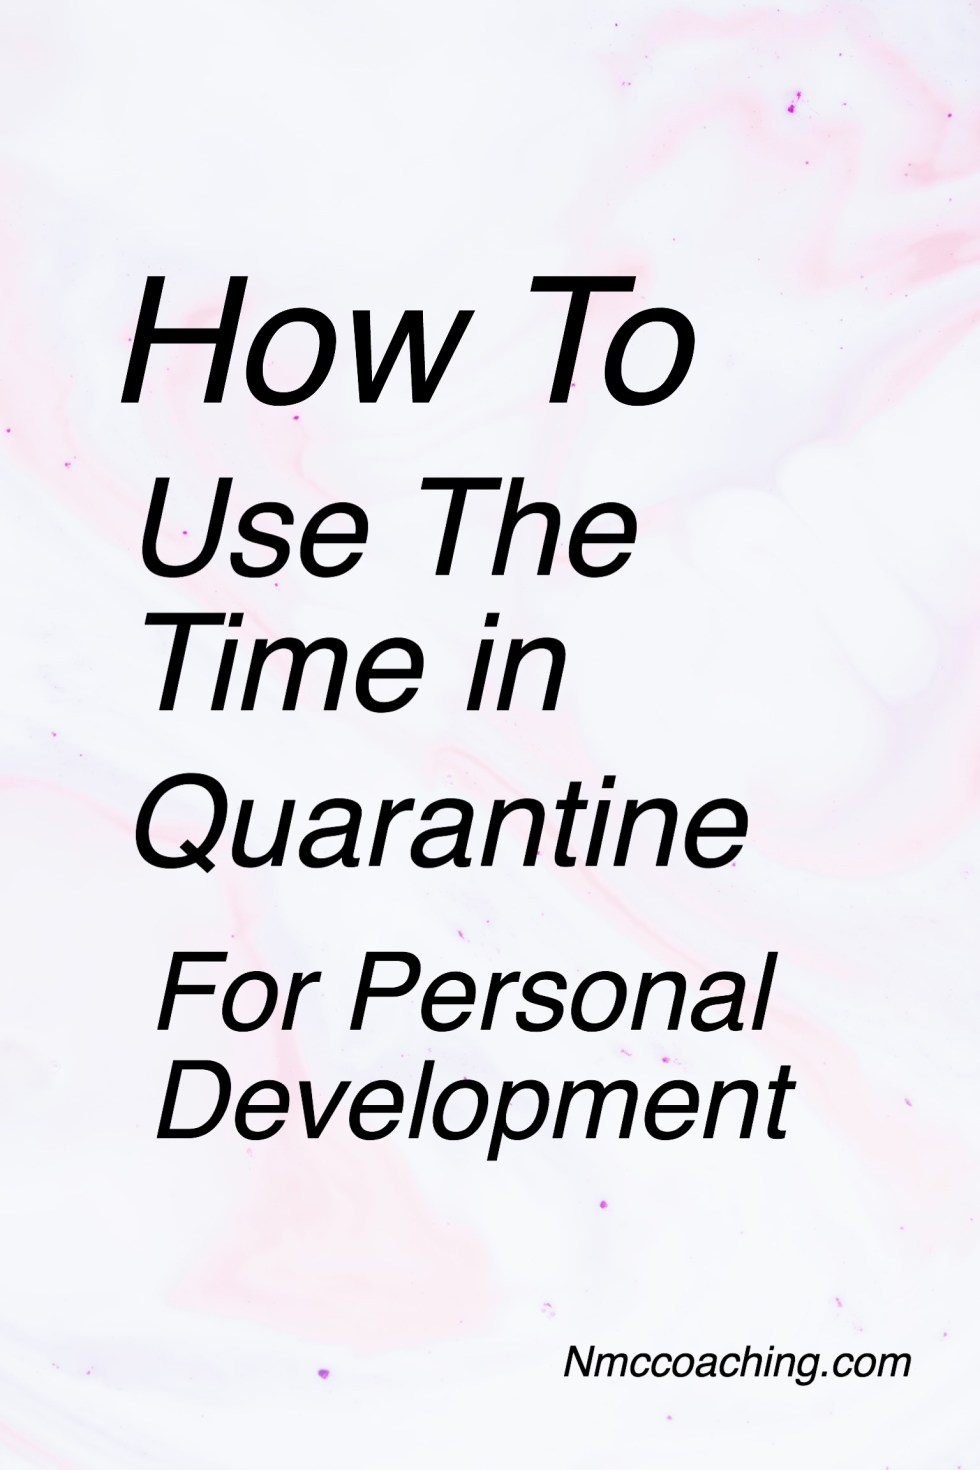 How To Use the Time in quarantine for personal development